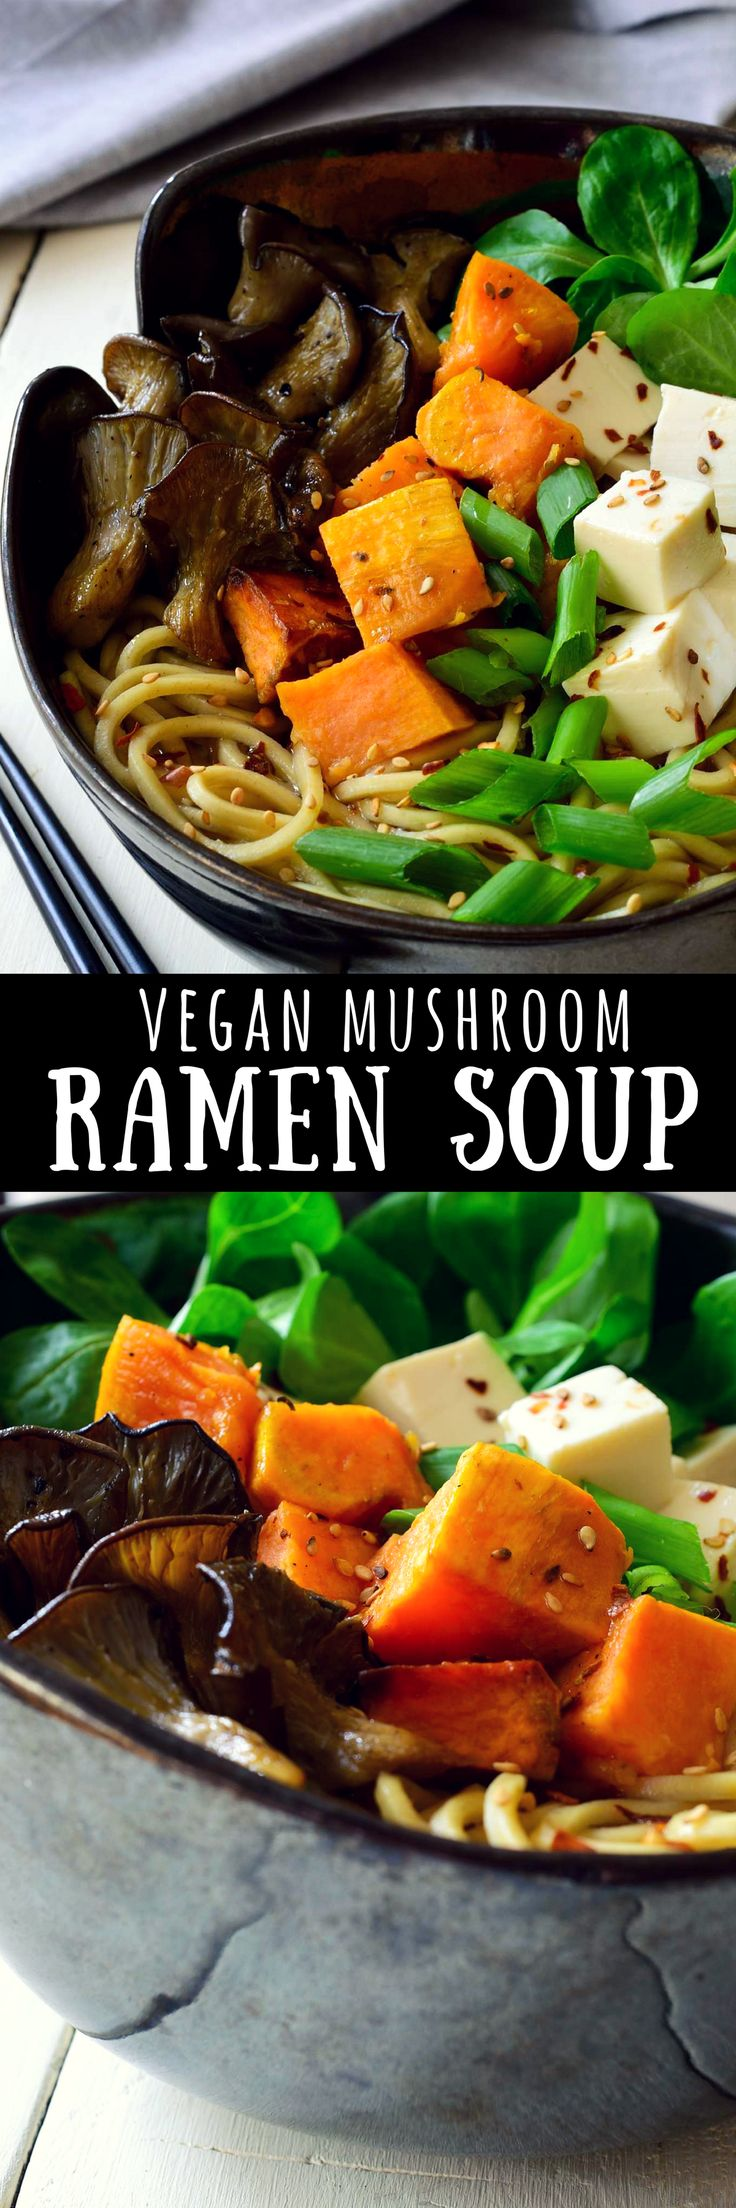 This vegan mushroom ramen soup recipe is replete with the flavours of autumn: fresh mushrooms, sweet potato and leafy greens. Mushroom ramen is just what you need to warm you up when the fall evenings start to get a bit chilly.